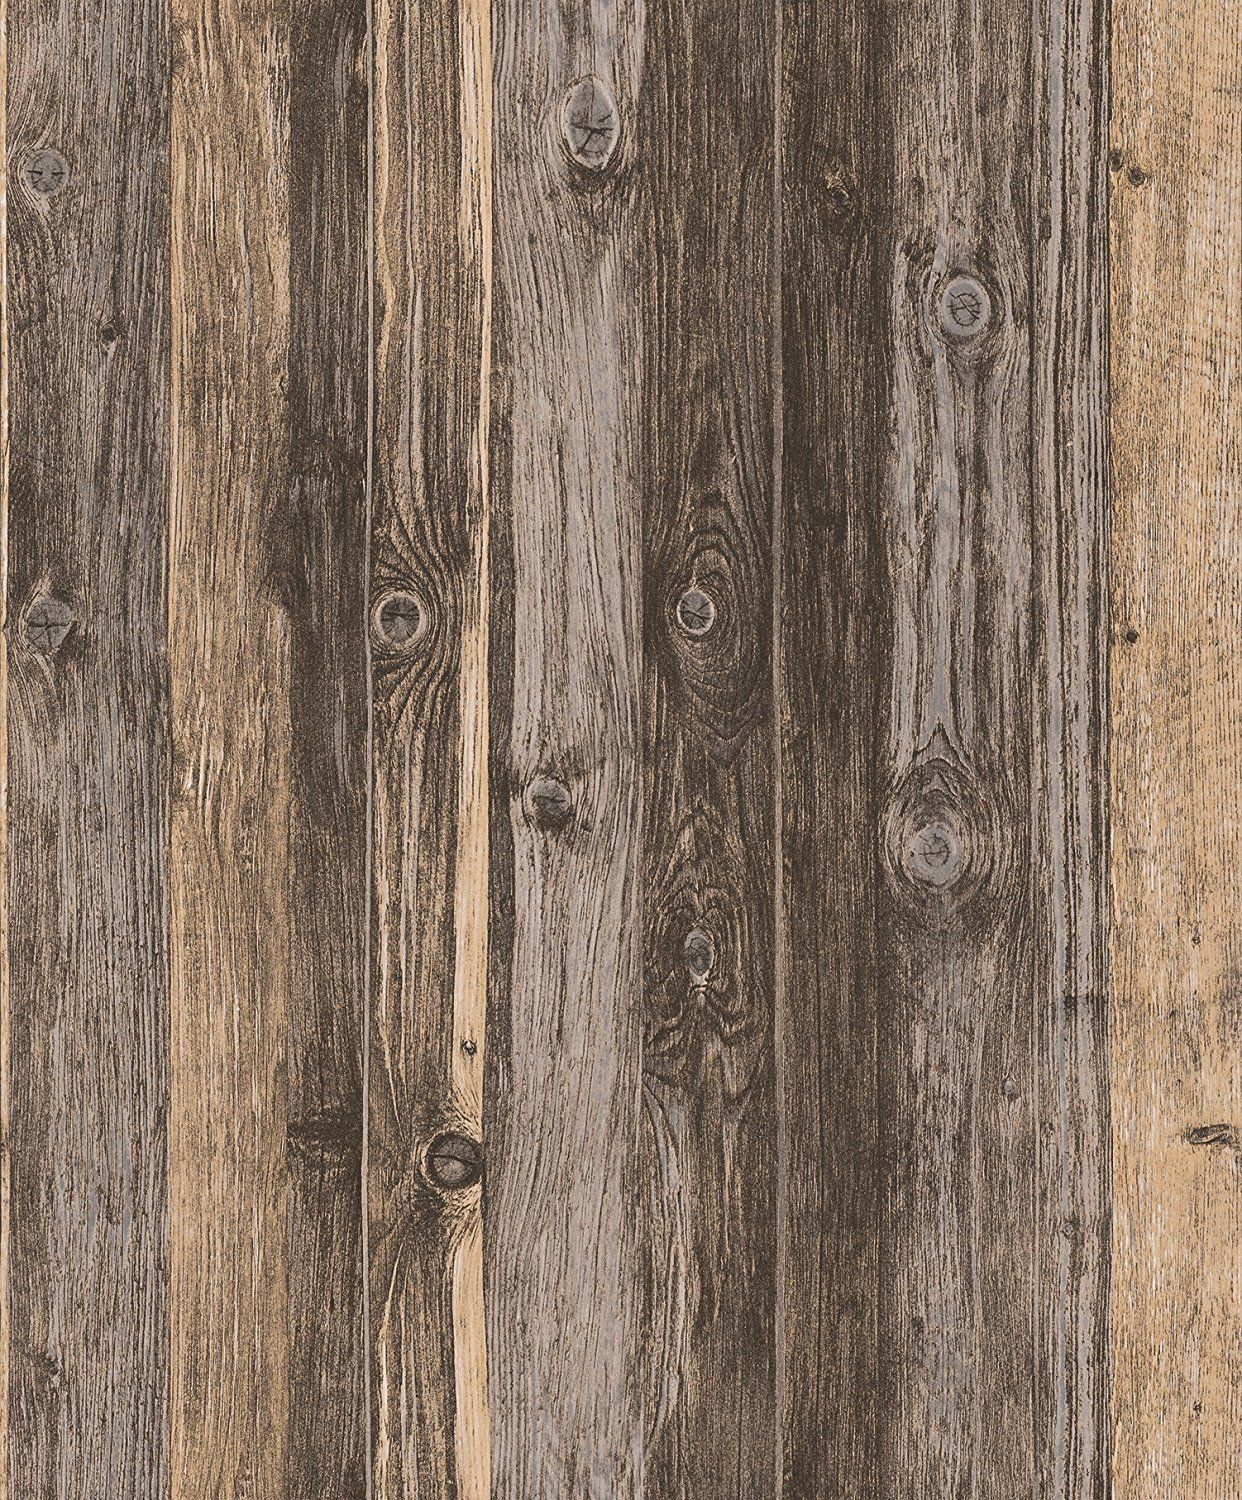 Blooming Wall 910707 Faux Multicolor Vintage Barnwood tablón de madera